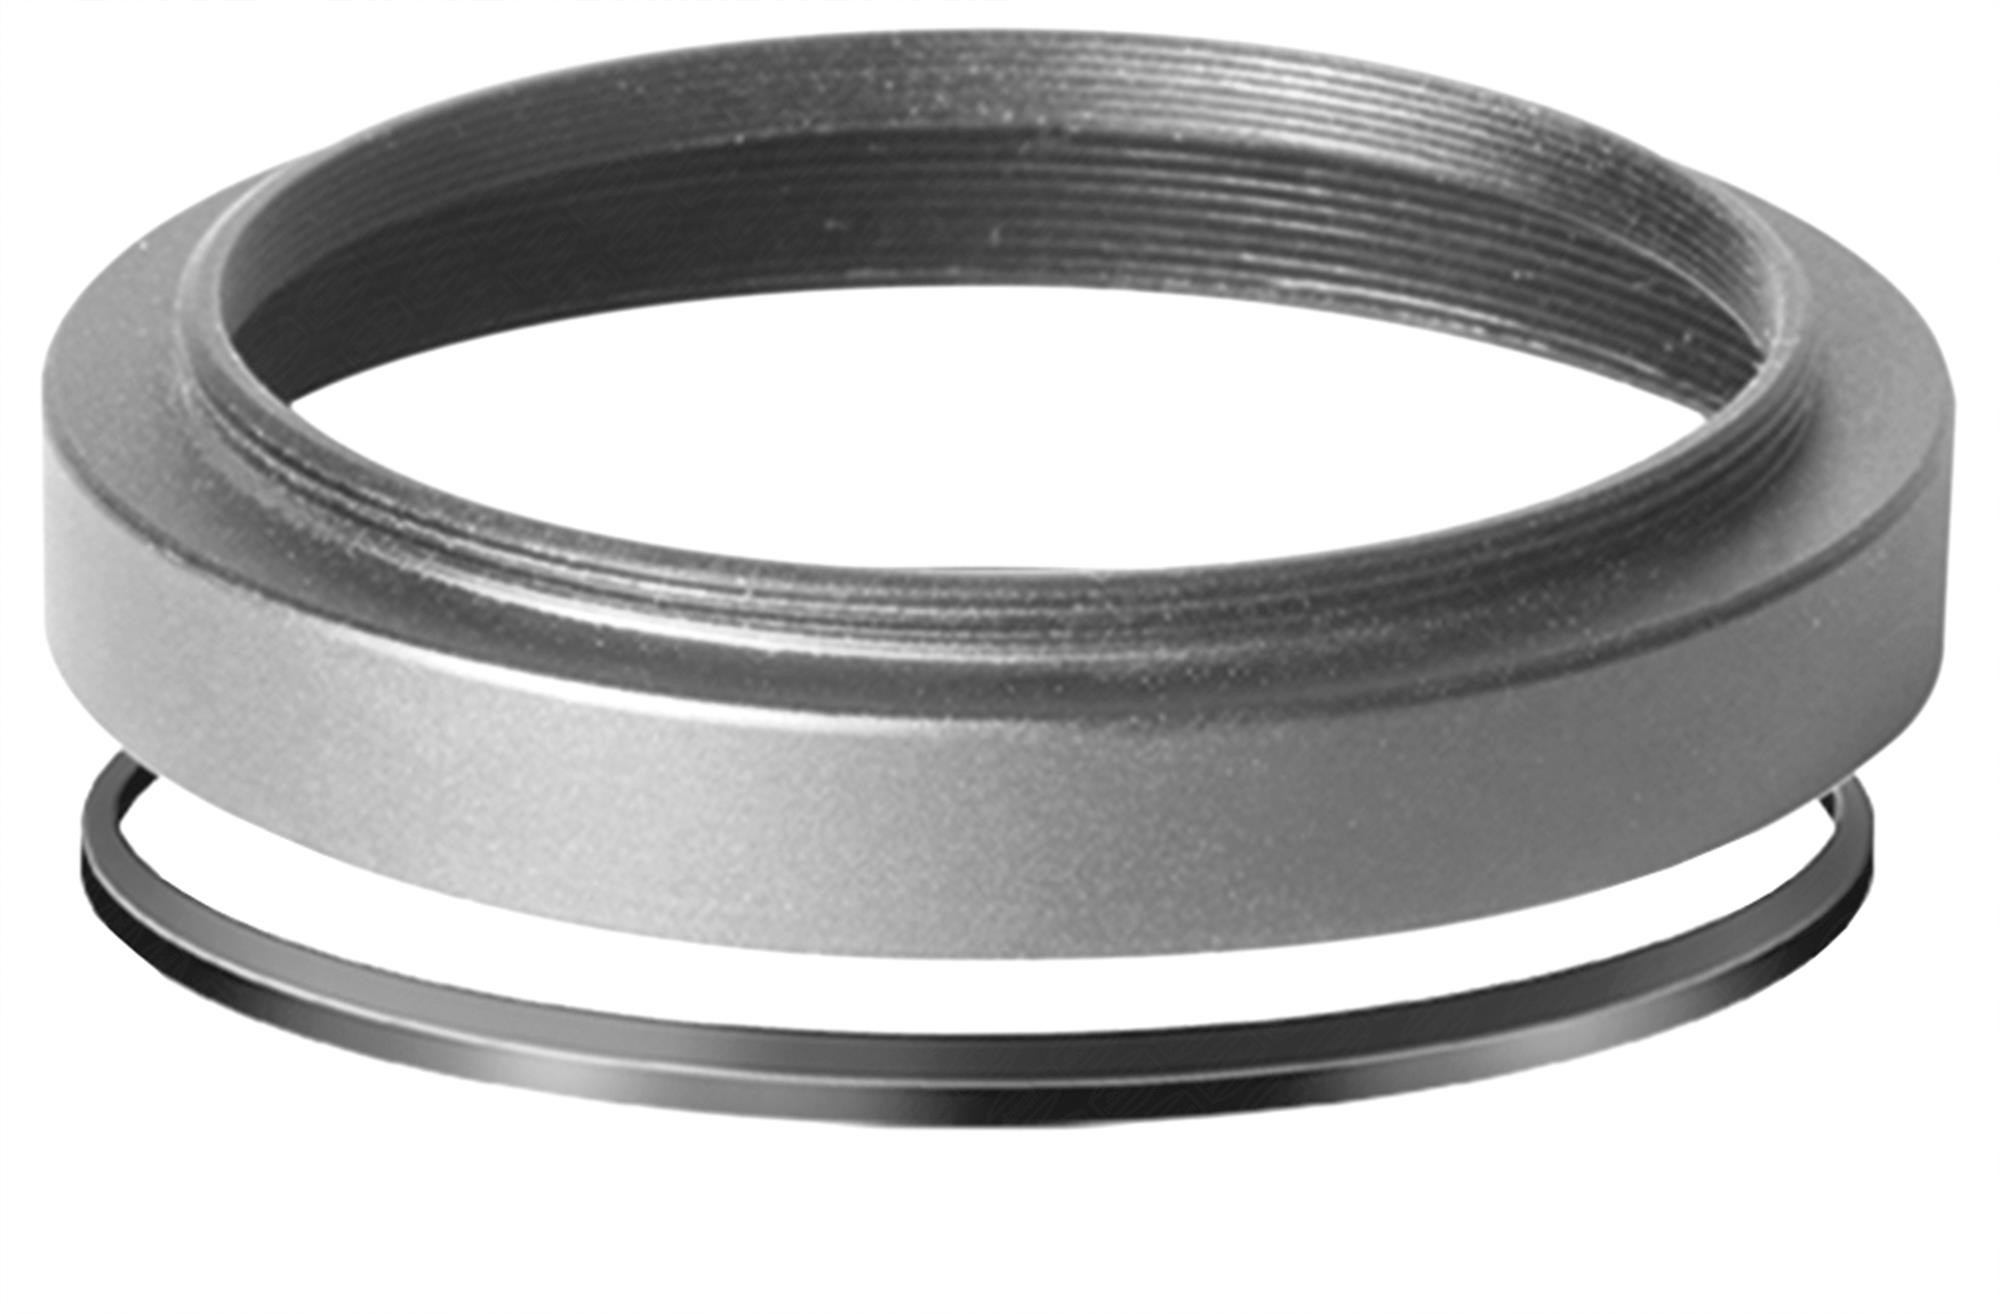 Baader Hyperion DT-Ring SP54/M49 for DTAdapter II&III and Hyperion Eyepieces